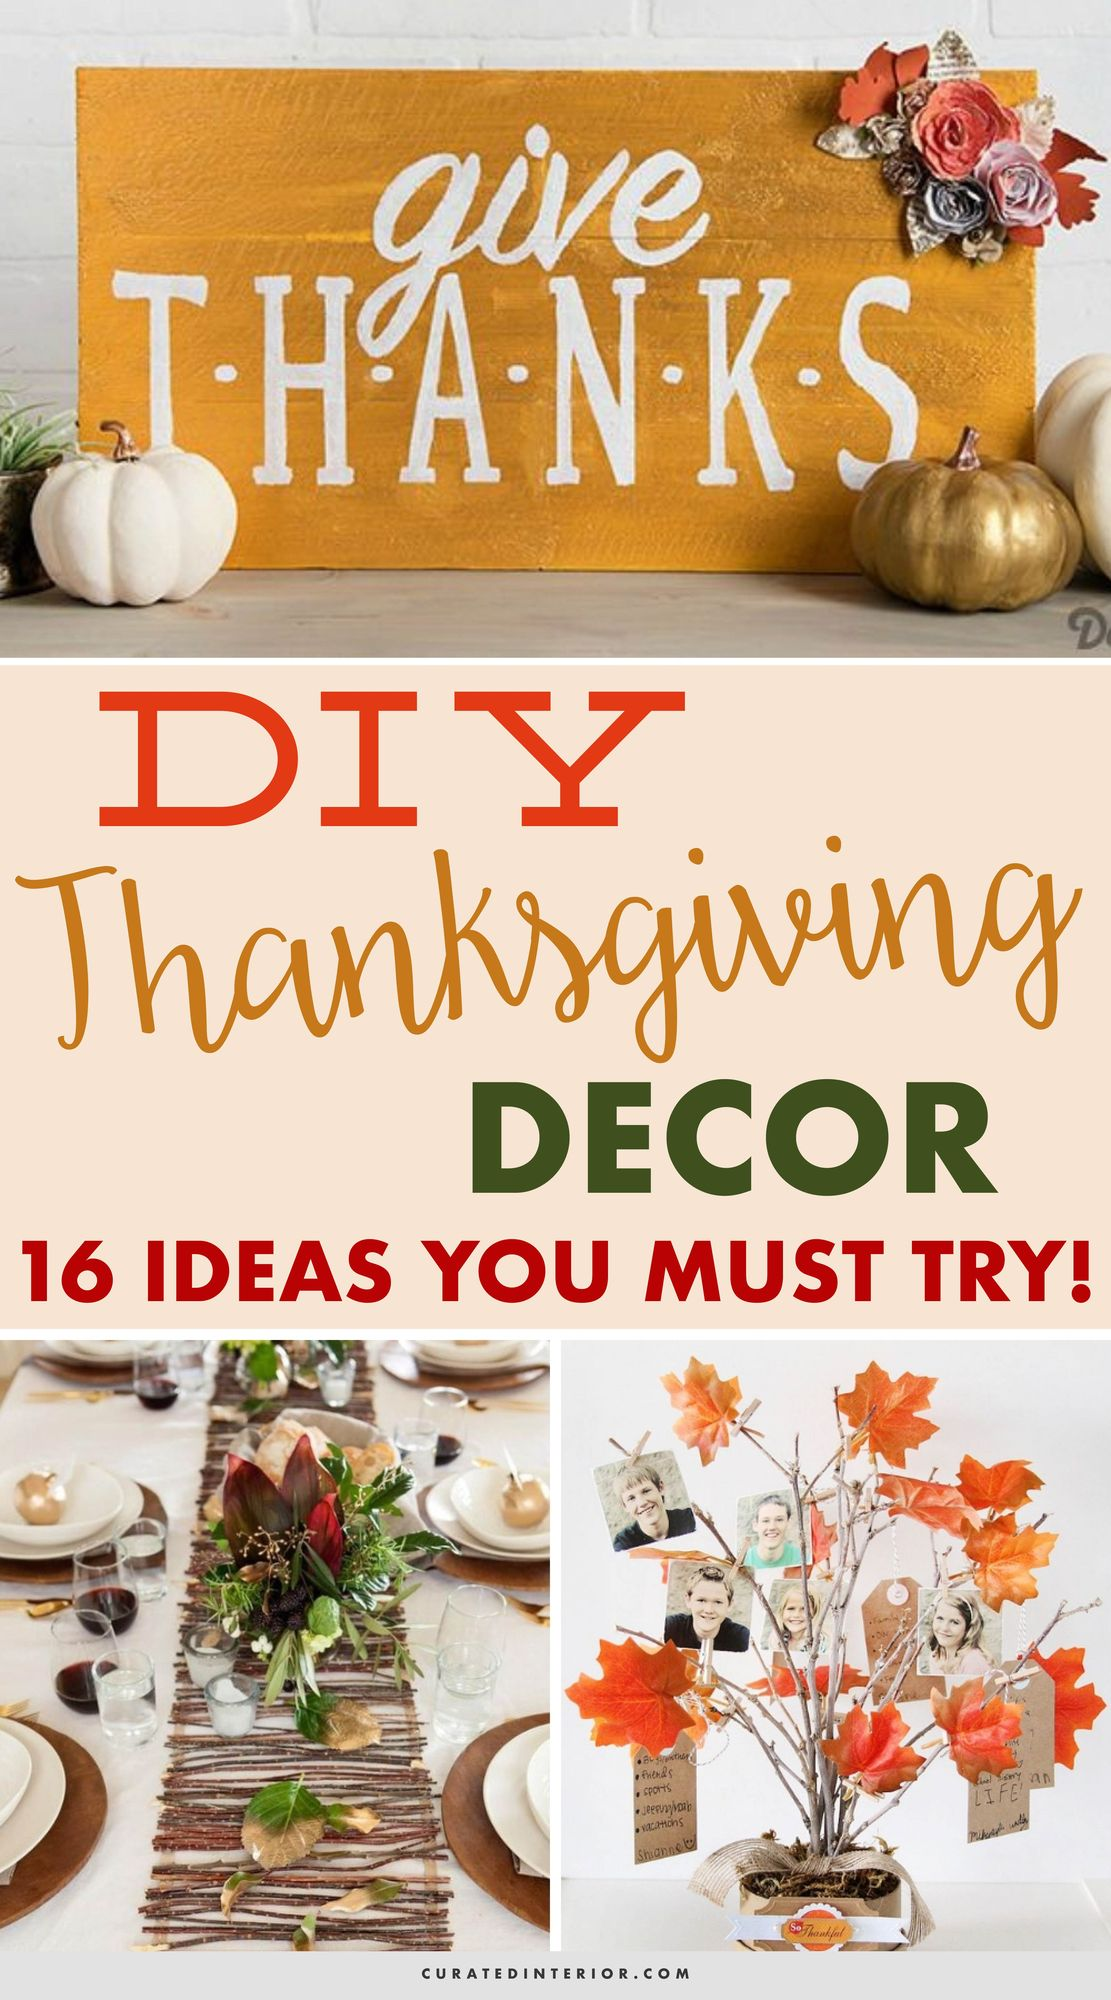 DIY Thanksgiving Decor Ideas You MUST Try